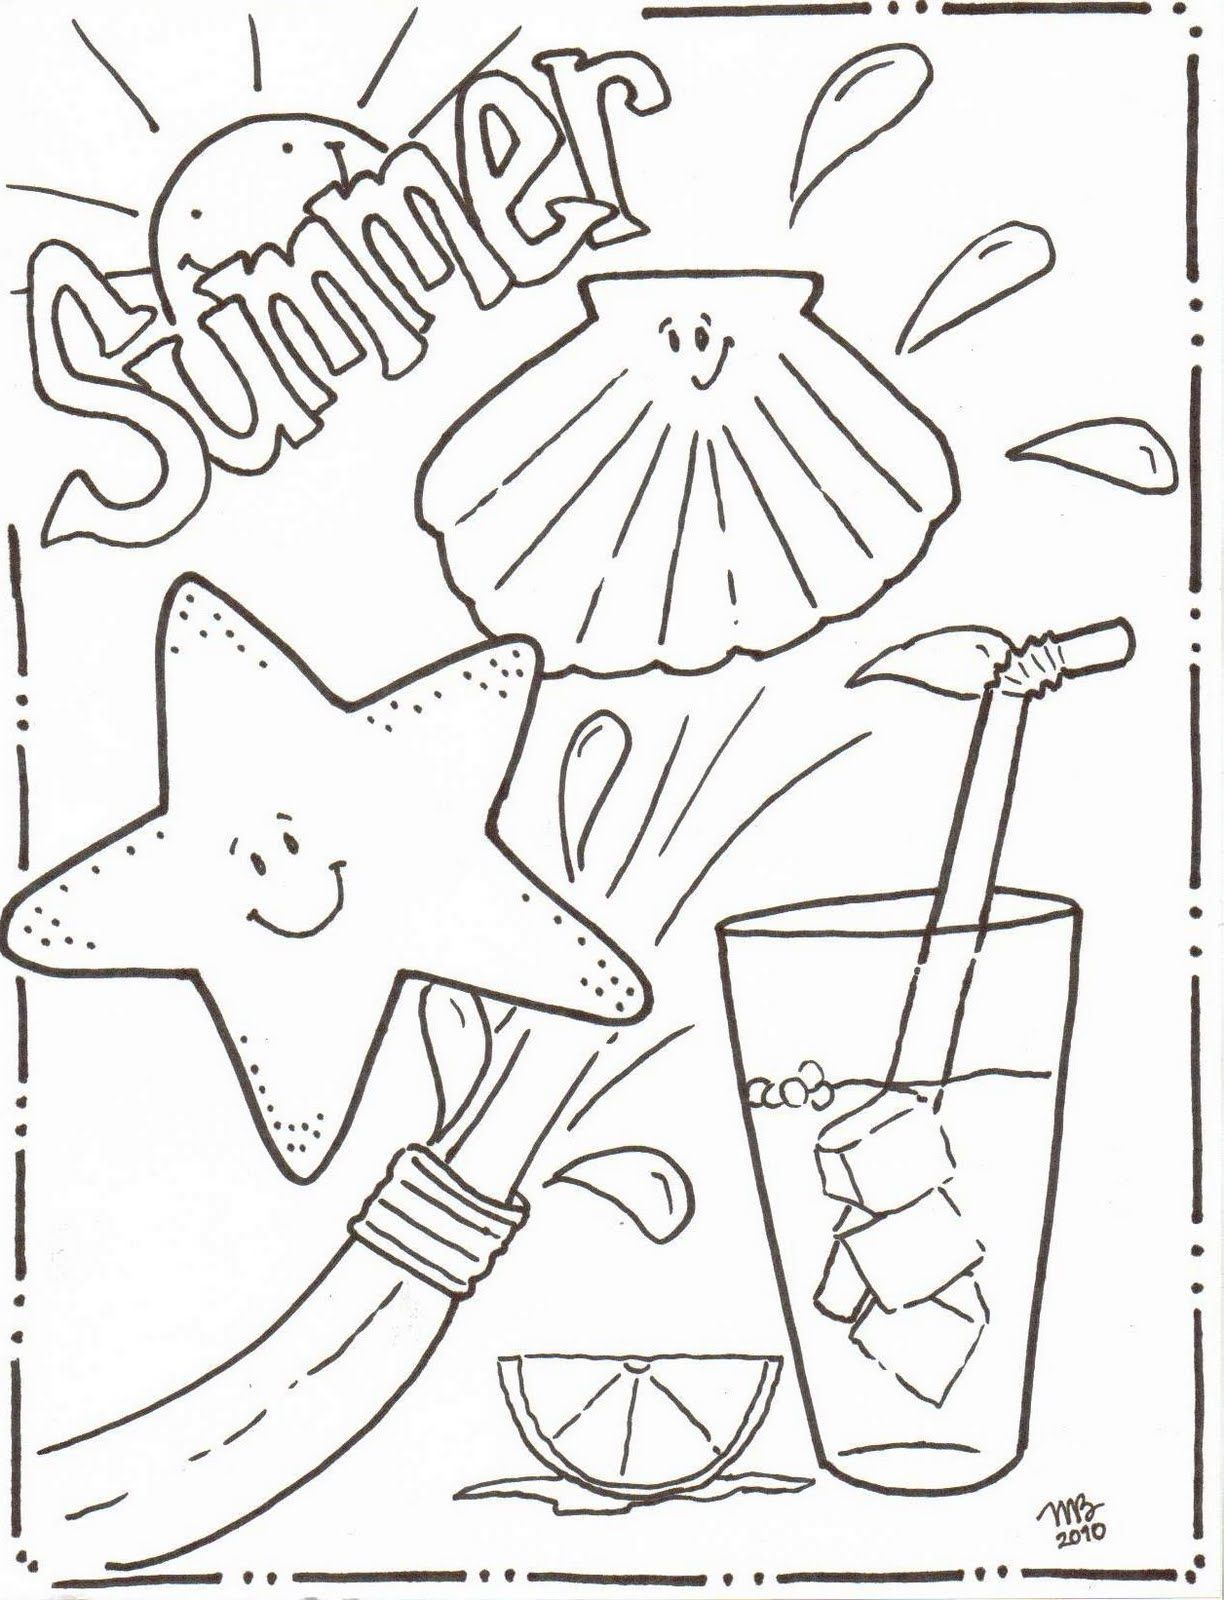 Summer Coloring Pages | Clip Art | Pinterest | Summertime, Originals ...